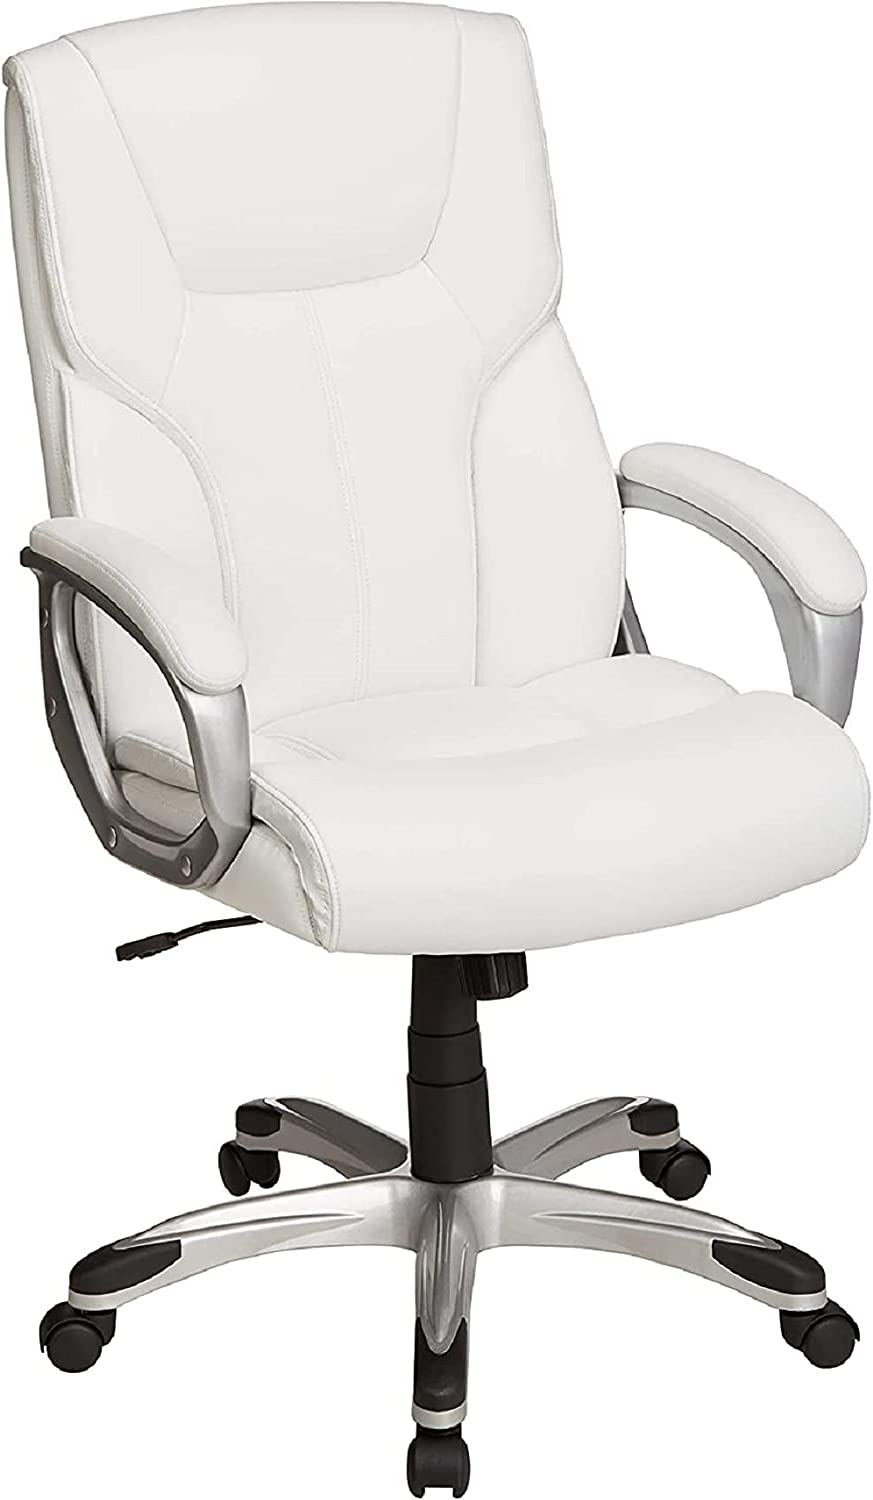 SKDH Executive Office cheap Desk Chair with Armrests Limited time trial price Adjustable Heigh